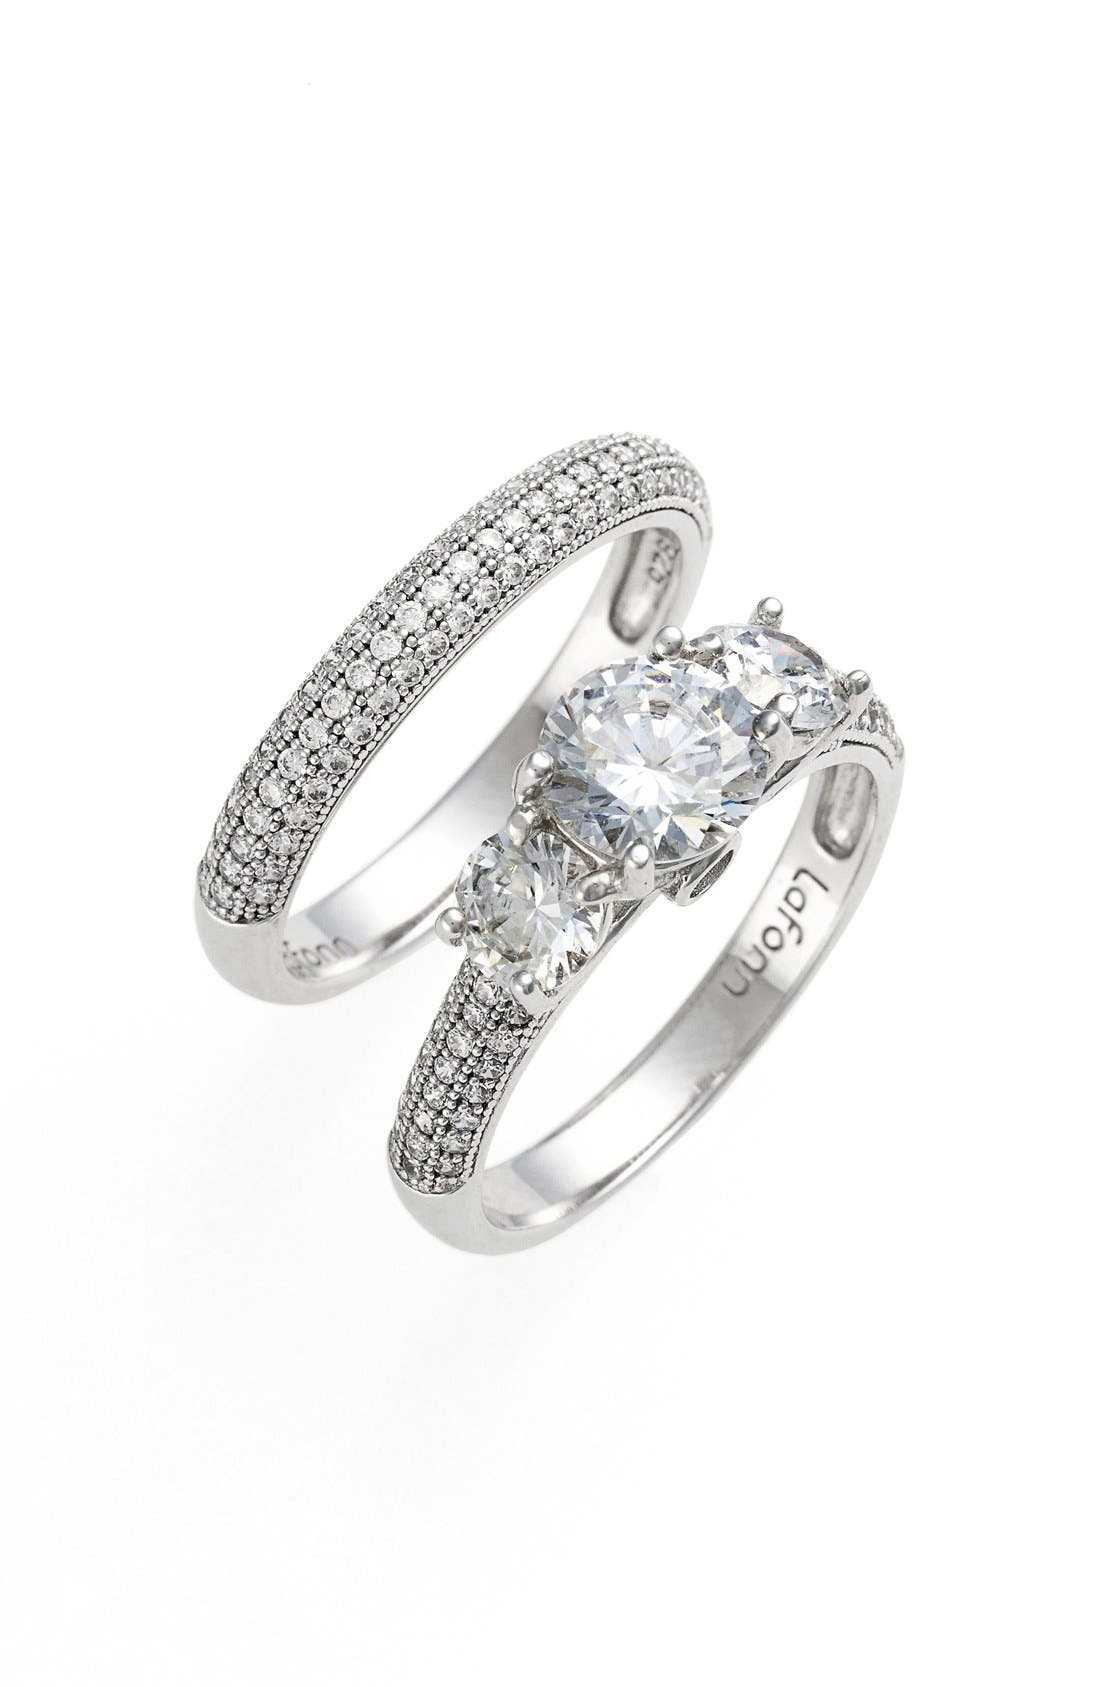 Alternate Image 1 Selected - Lafonn 'Lassaire' Engagement Ring and Band (Set of 2)